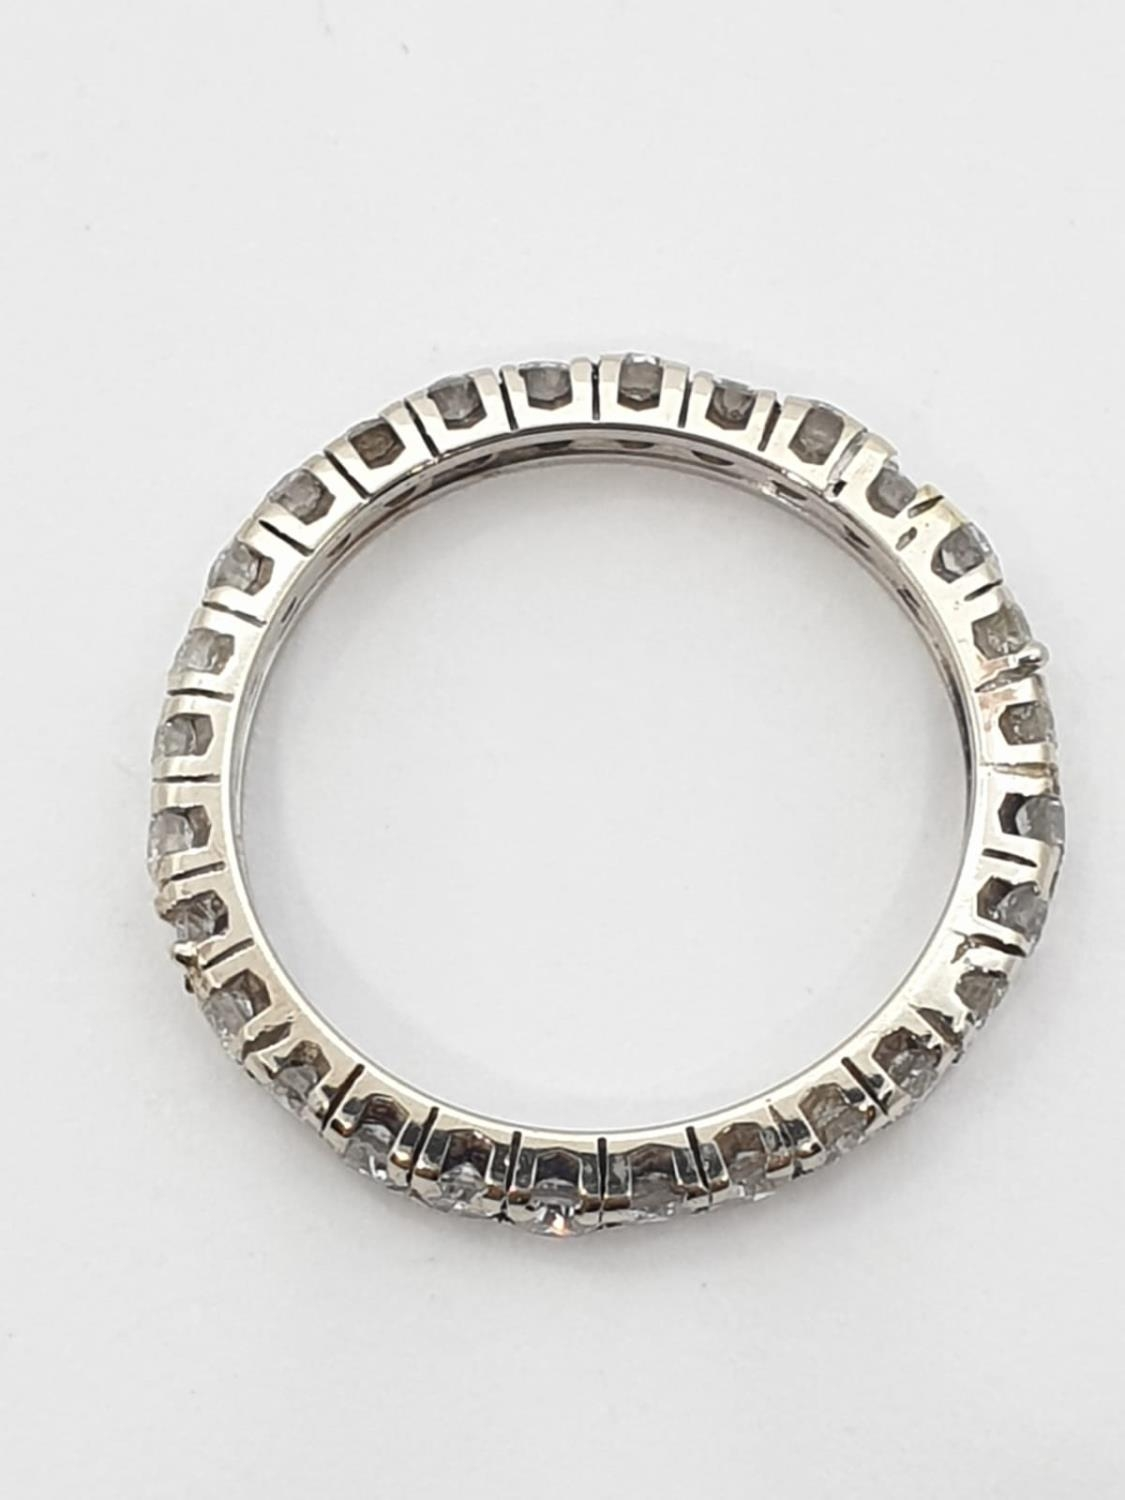 Diamond full eternity ring (tested 18ct gold), weight 2.27g and size J - Image 2 of 3